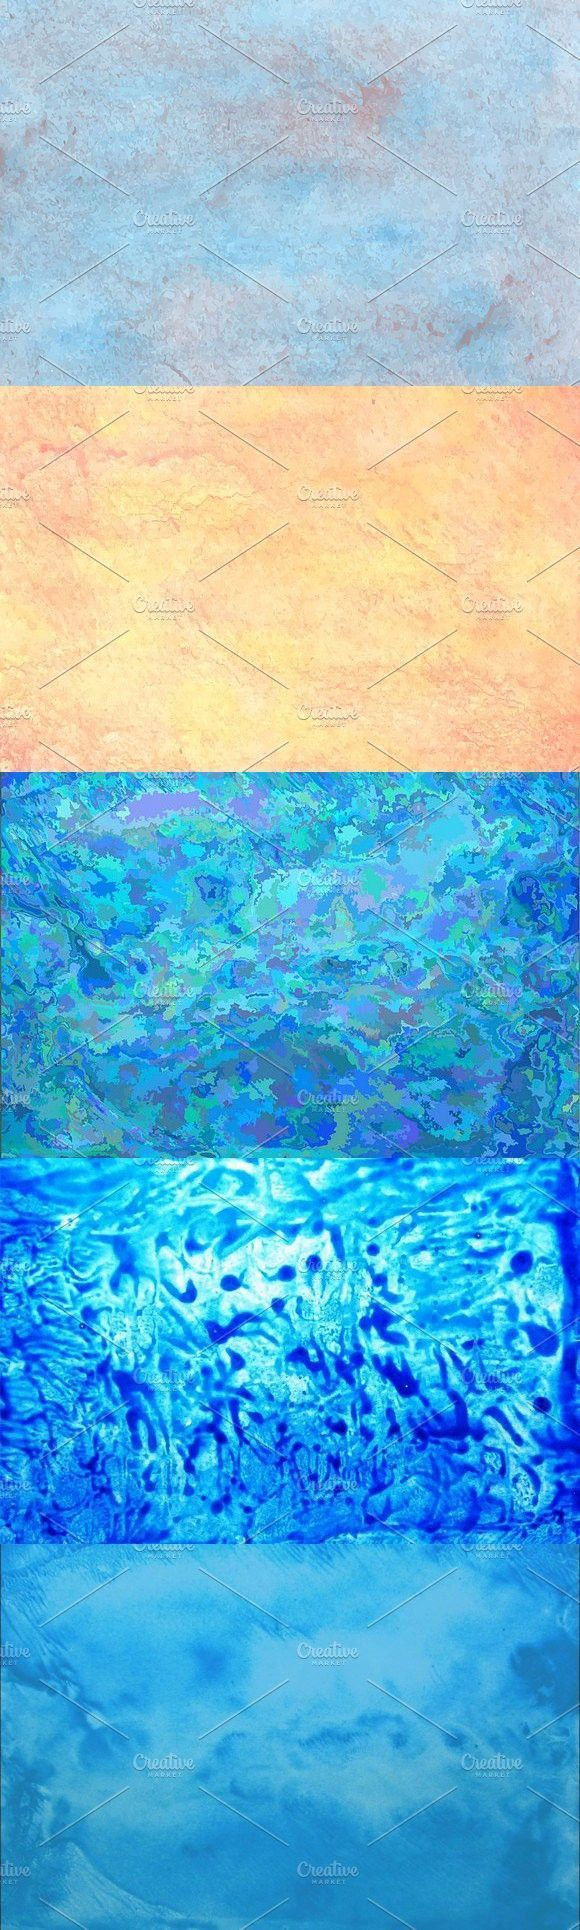 5 Abstract  backgrounds for design #abstract #artistic